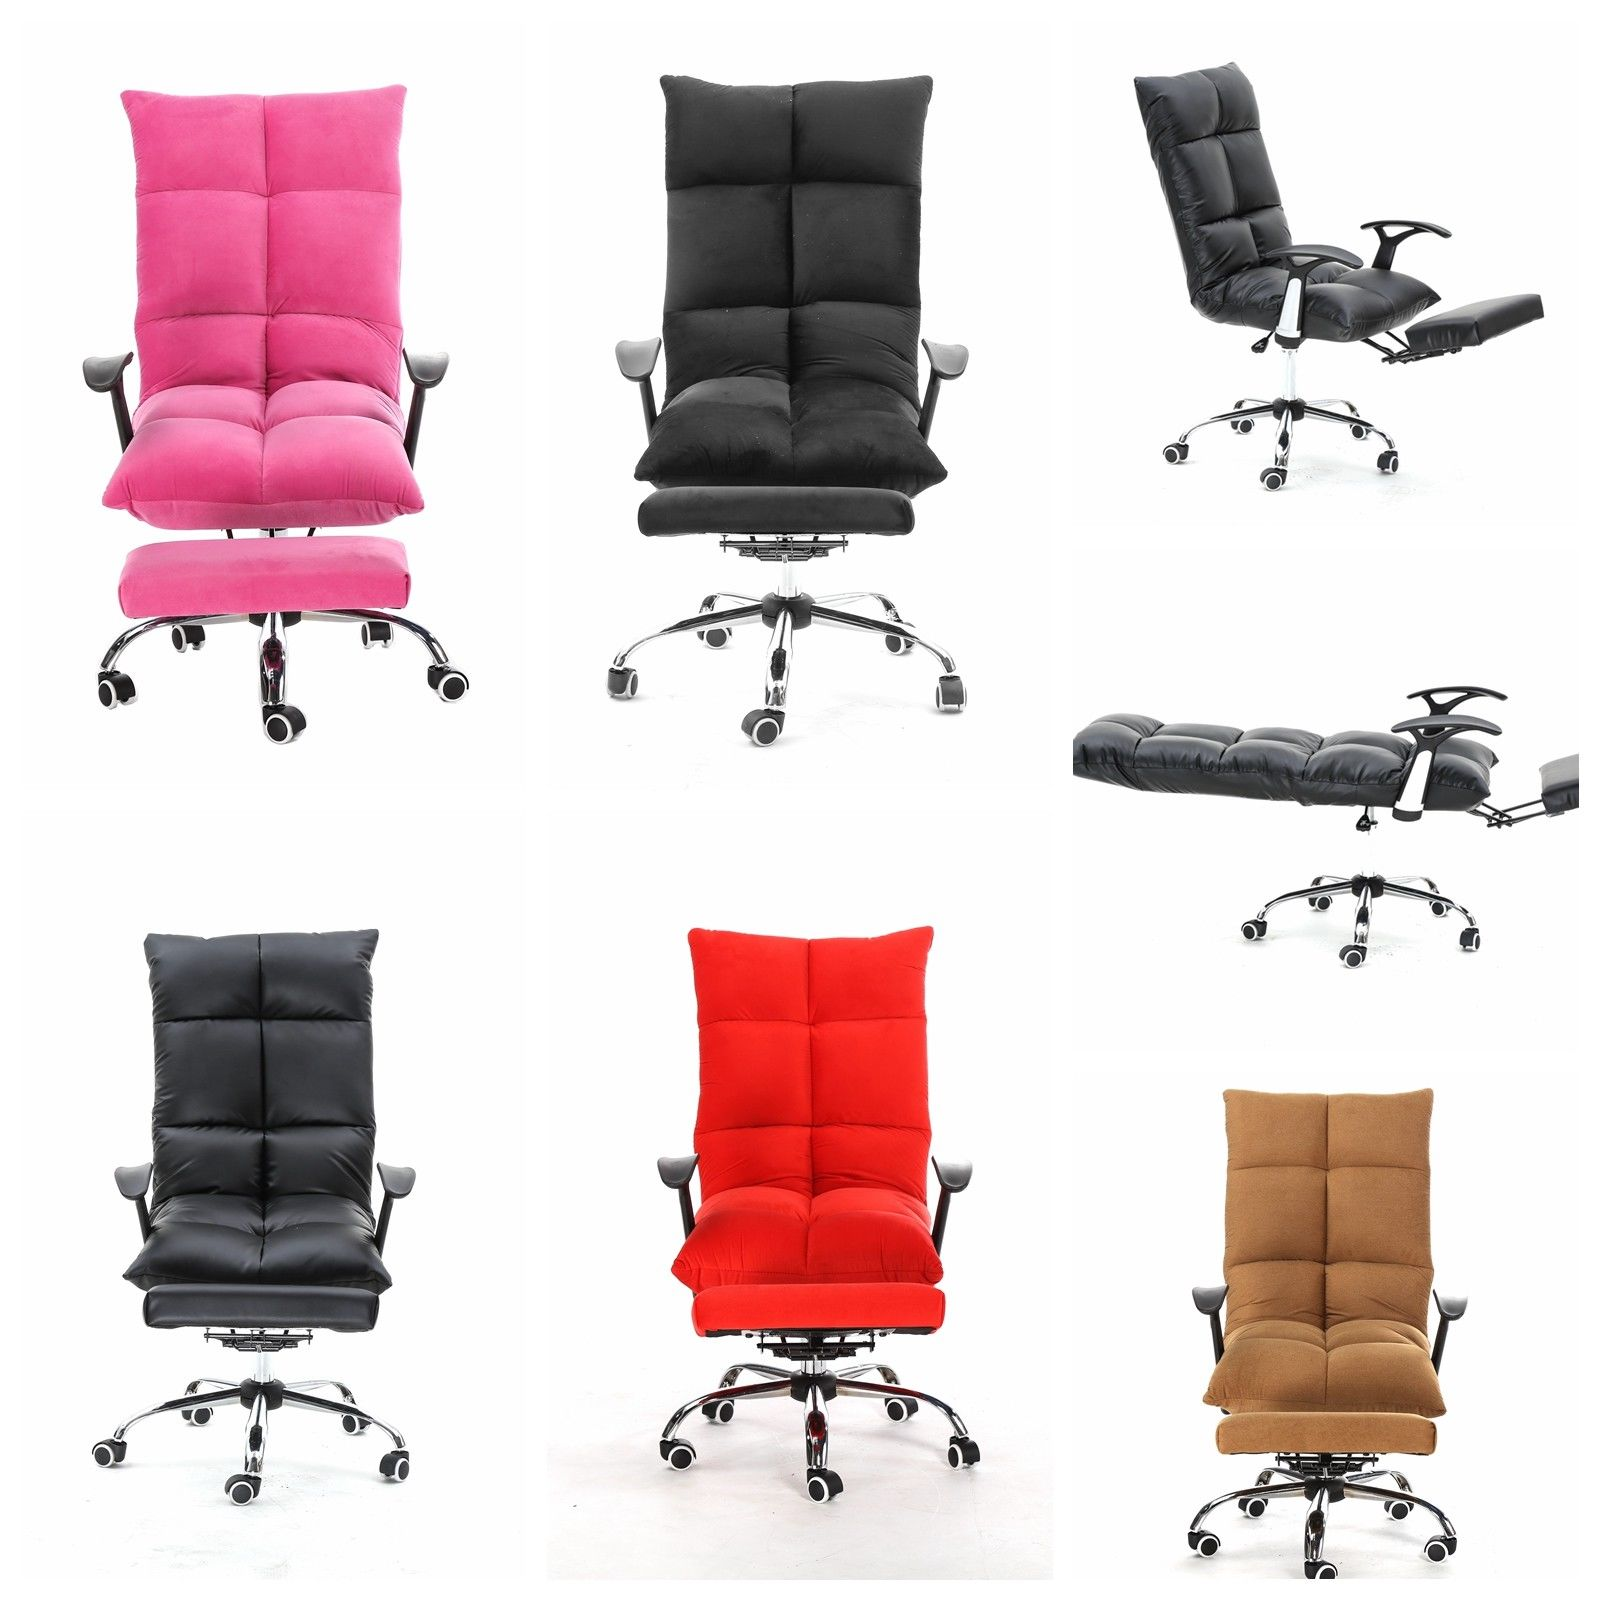 5-Position Mul-functional Tatami Home Office Computer Desk Chair With Adjustable Headrest Footrest Lay Flat Pink